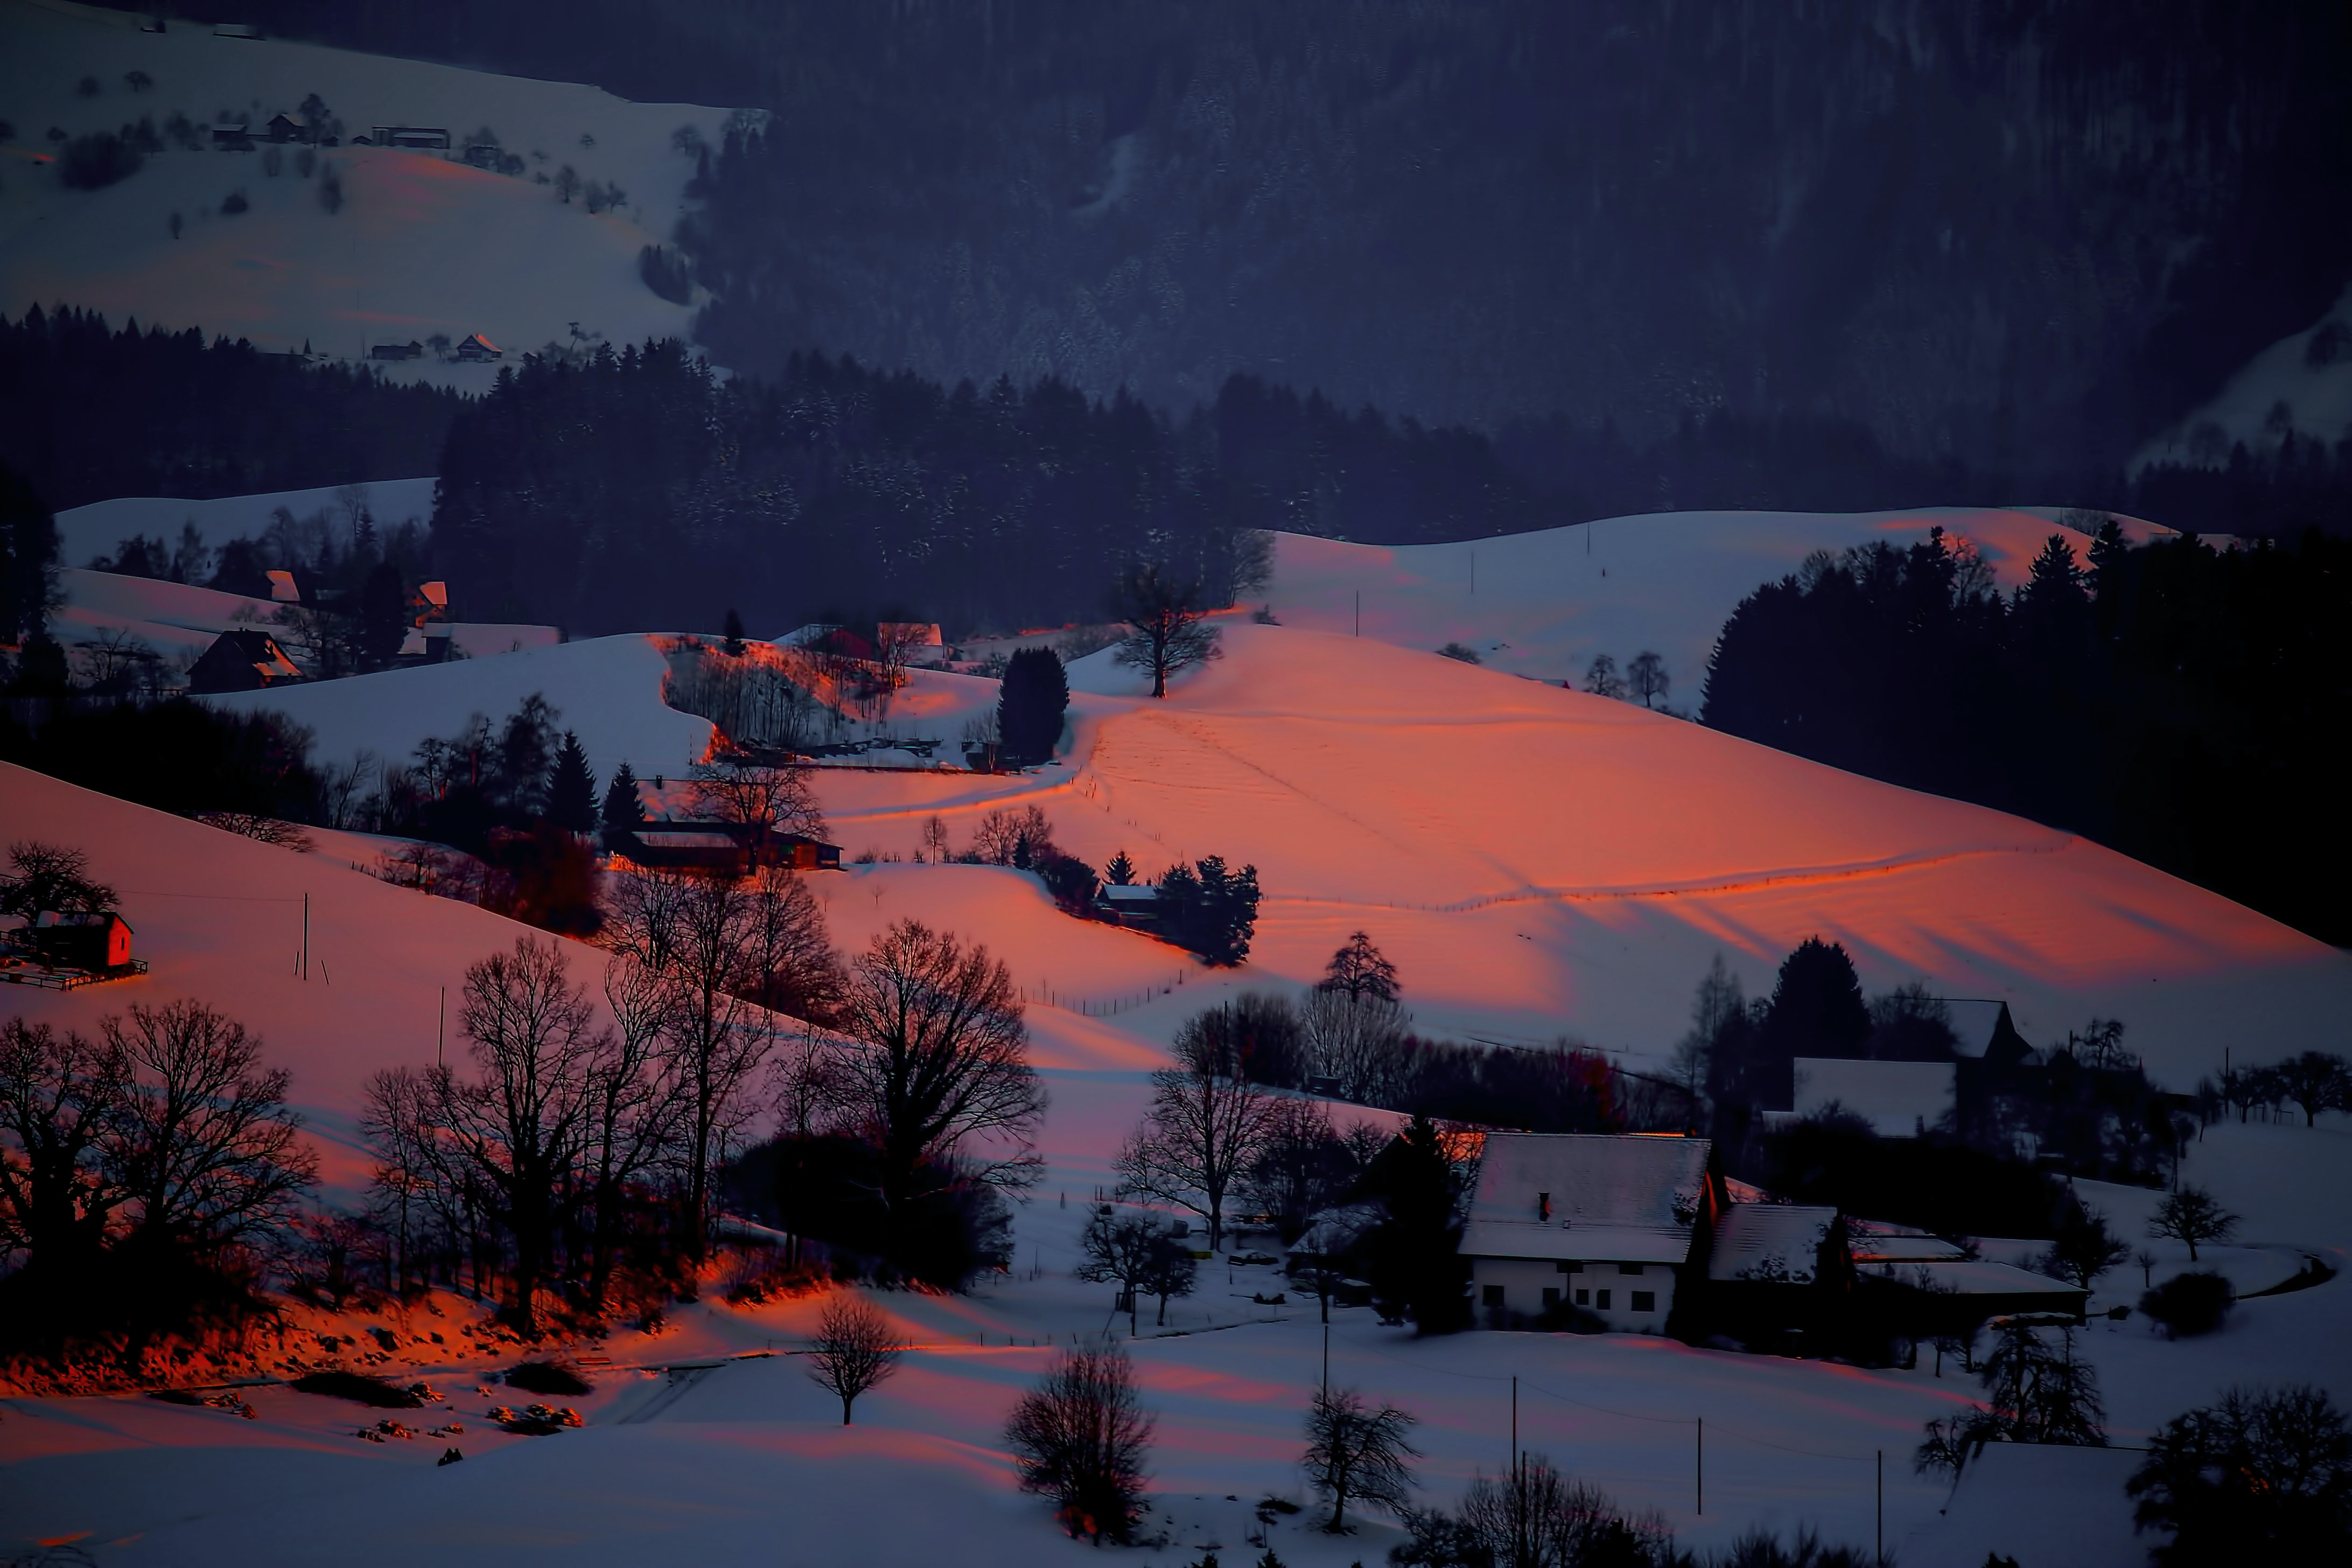 A red sunset taking over a rural mountain village